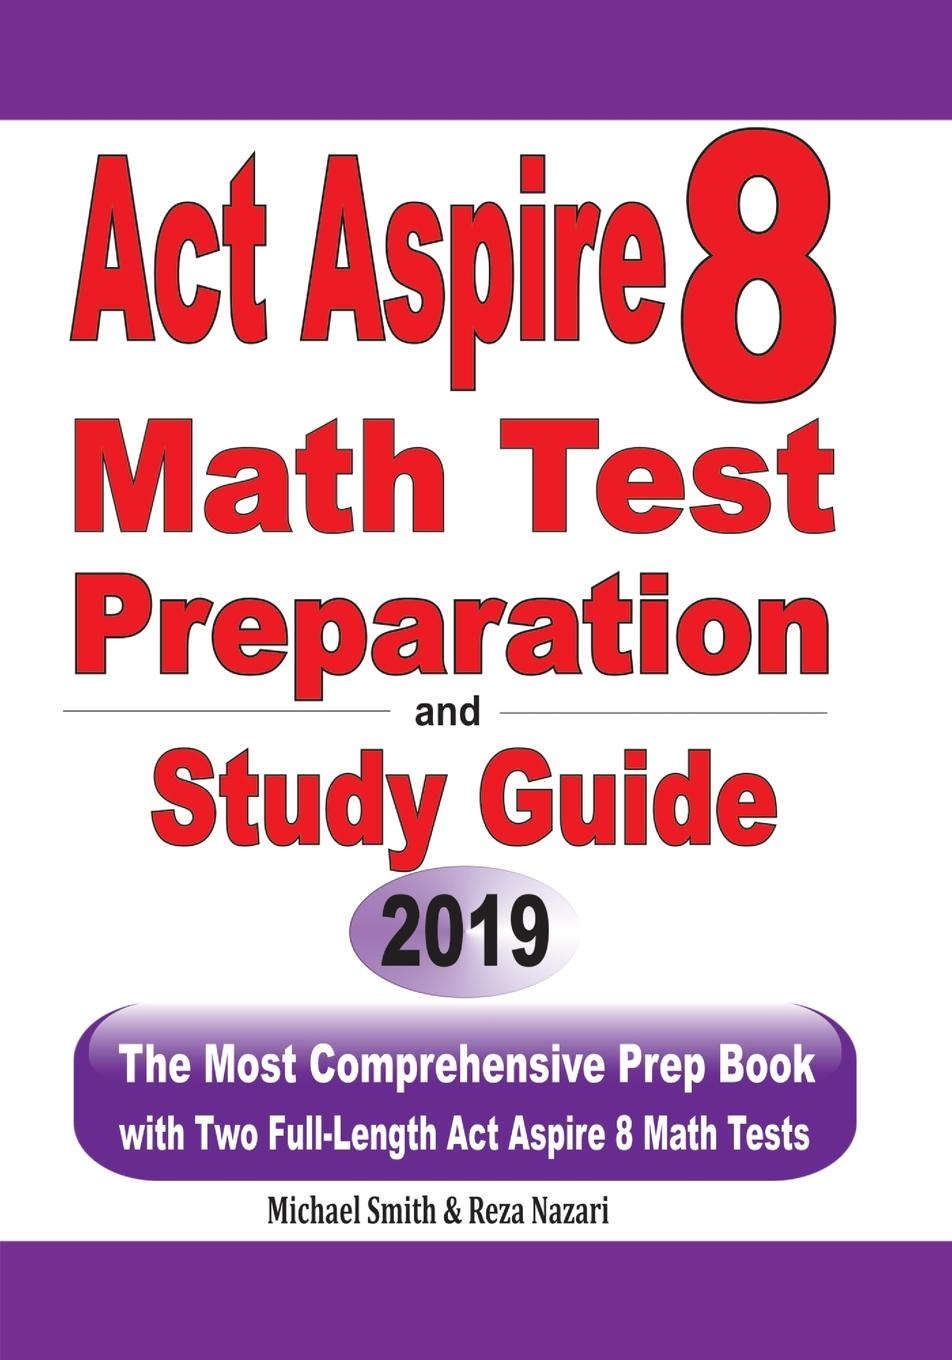 Michael Smith, Reza Nazari ACT Aspire 8 Math Test Preparation and study guide. The Most Comprehensive Prep Book with Two Full-Length ACT Aspire Math Tests